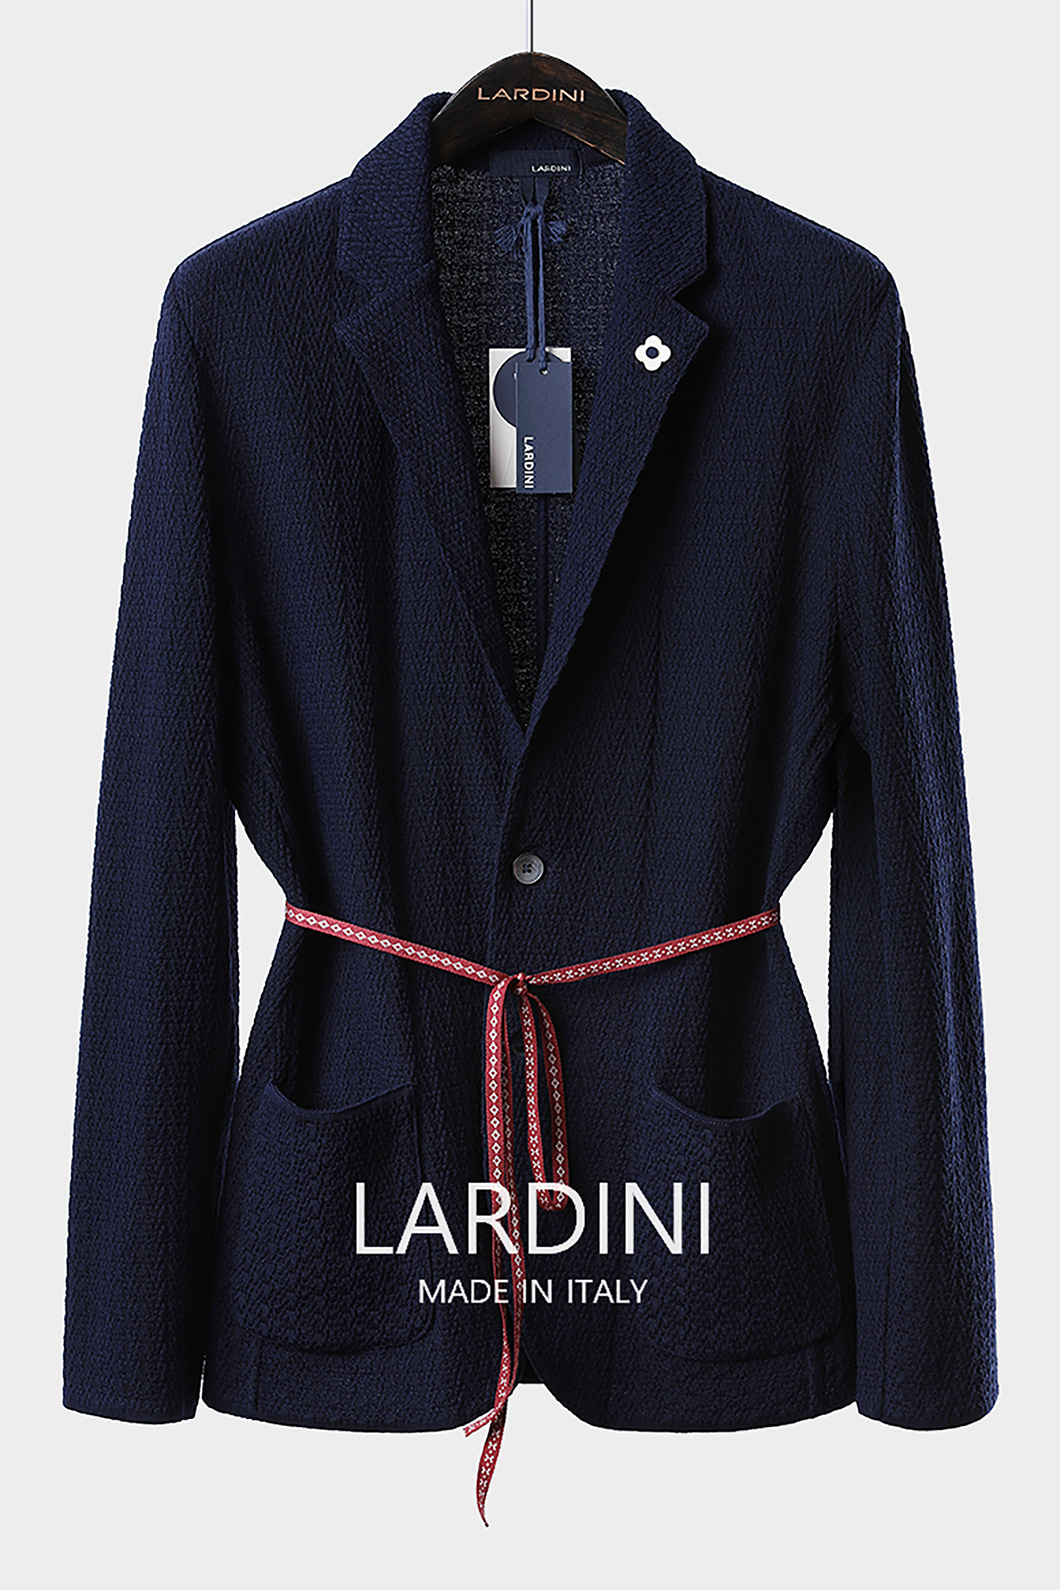 LARDINI SINGLE DIAMOND KNIT JACKET-NAVY